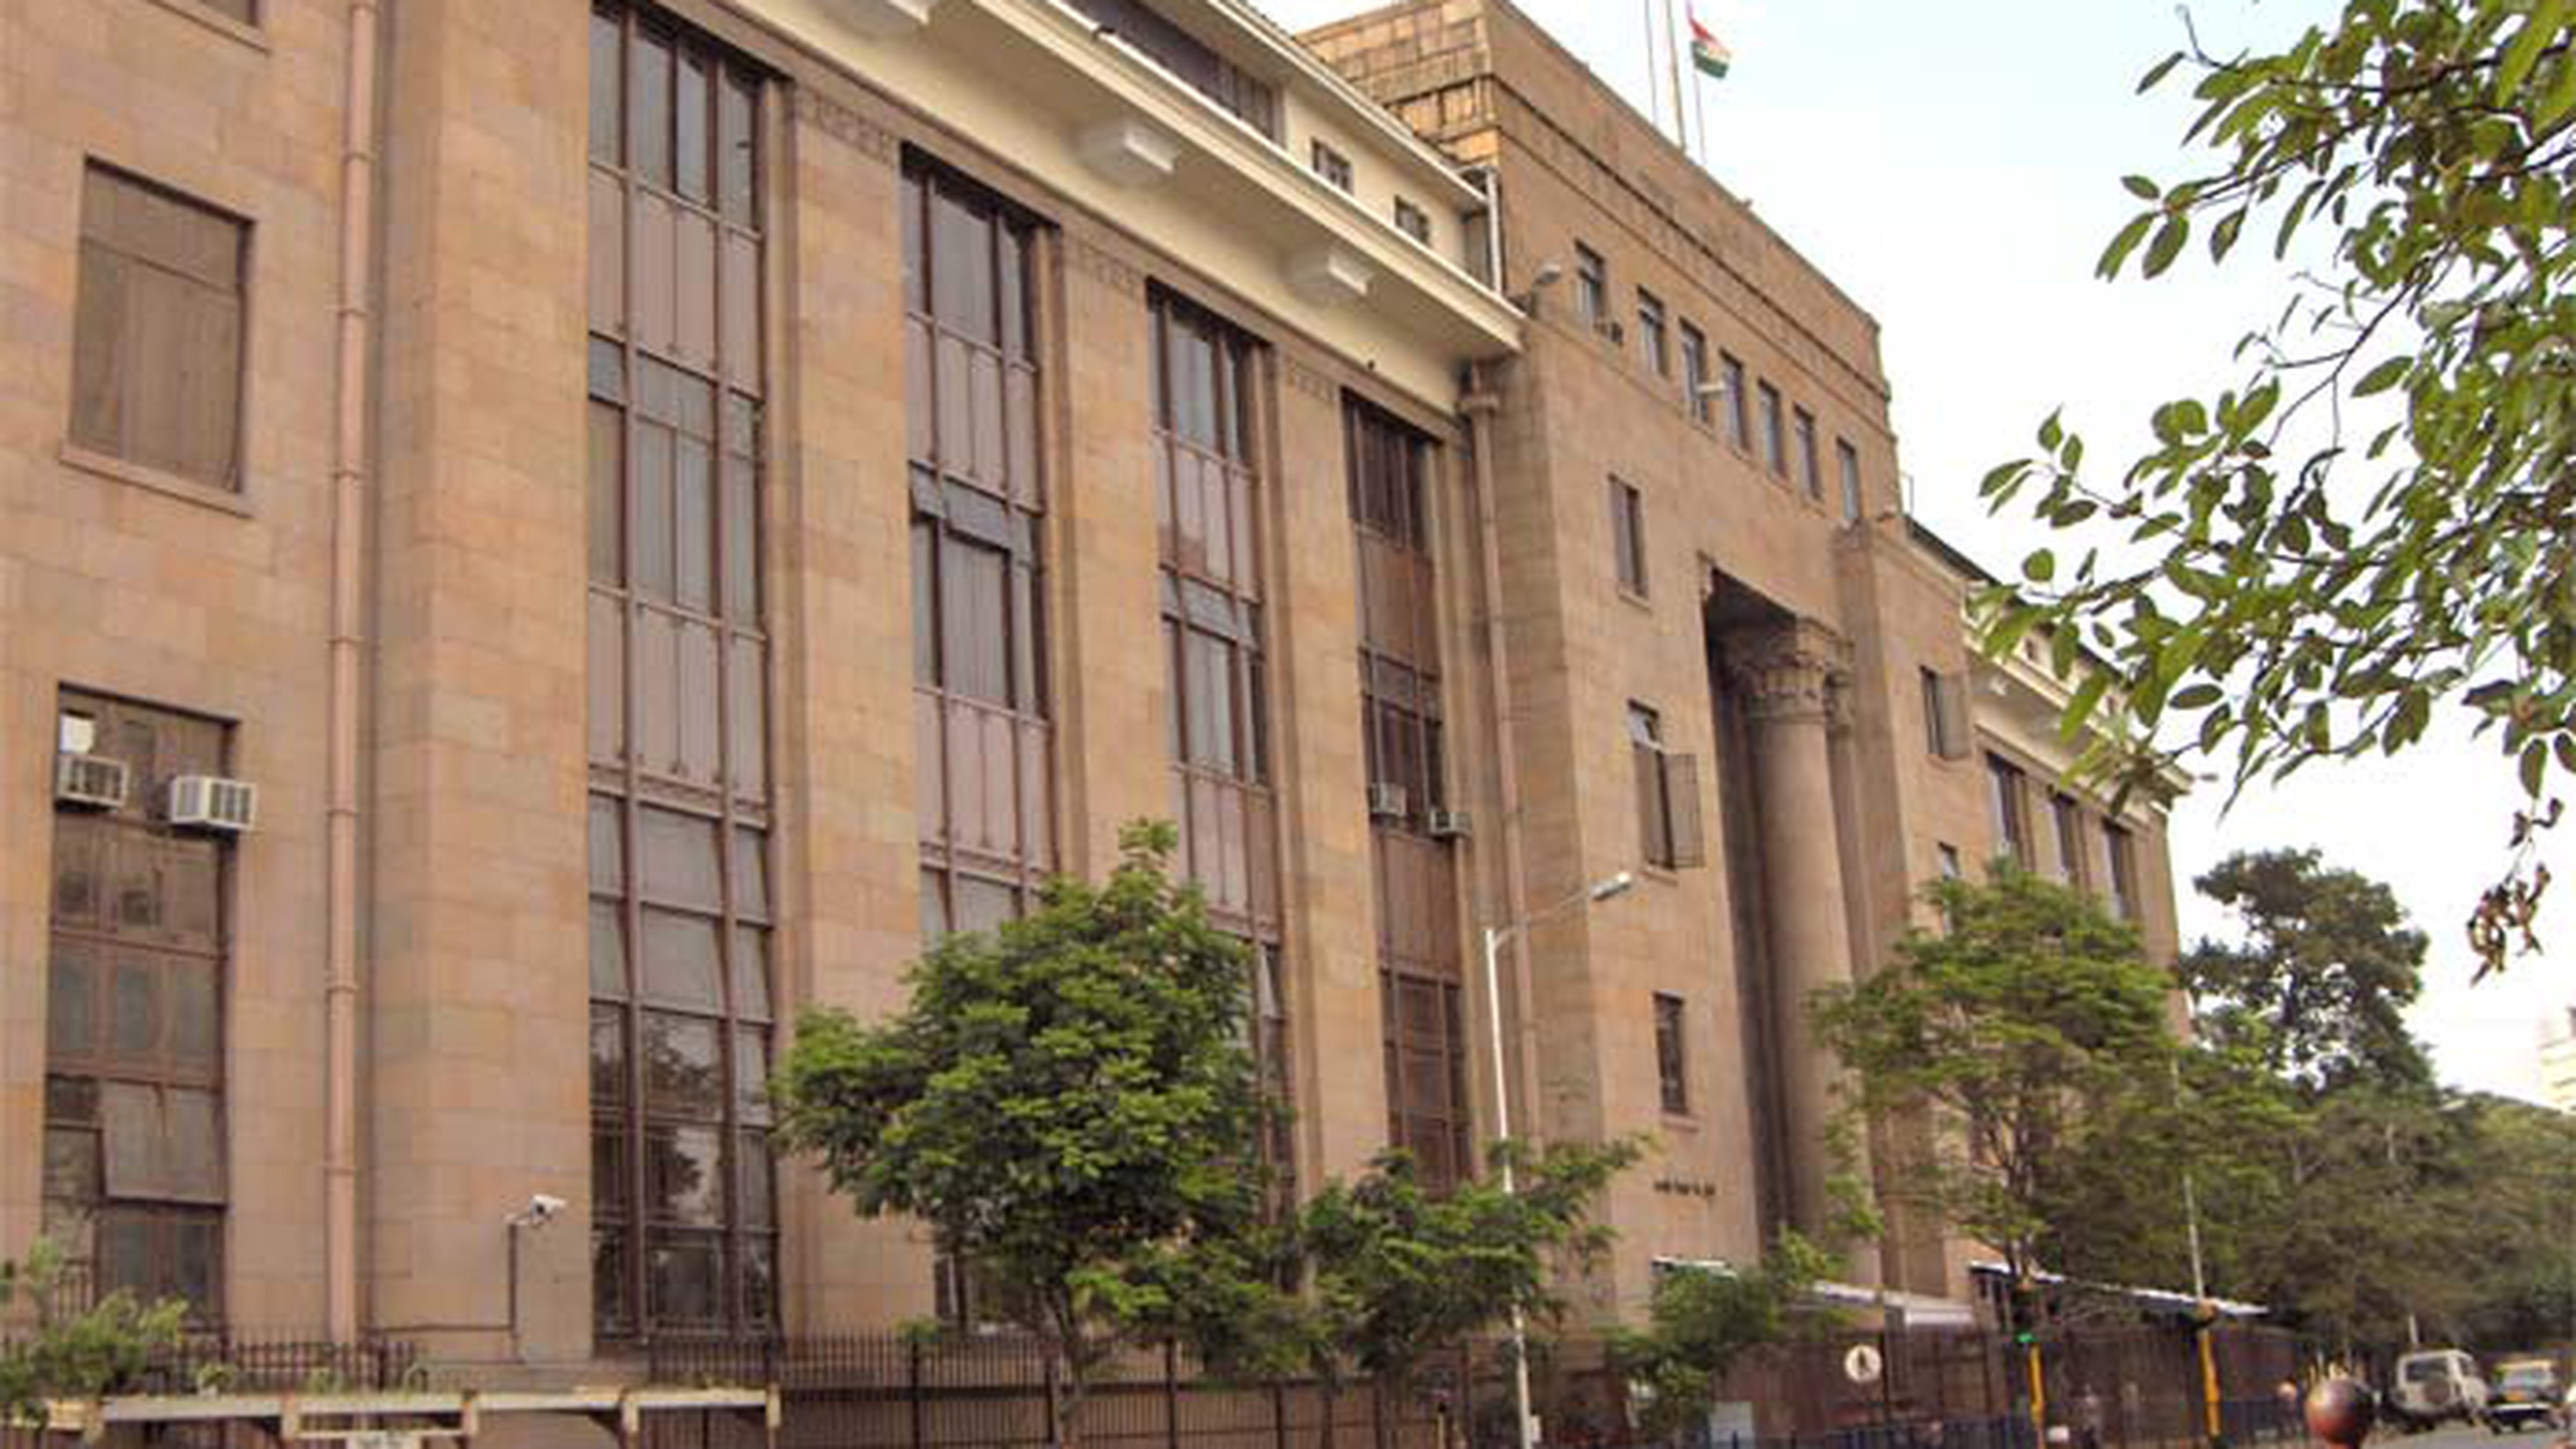 The Reserve Bank of India has admitted that frauds have become the most serious operational risk, with about 90 per cent of the irregularities located in the credit portfolios of banks